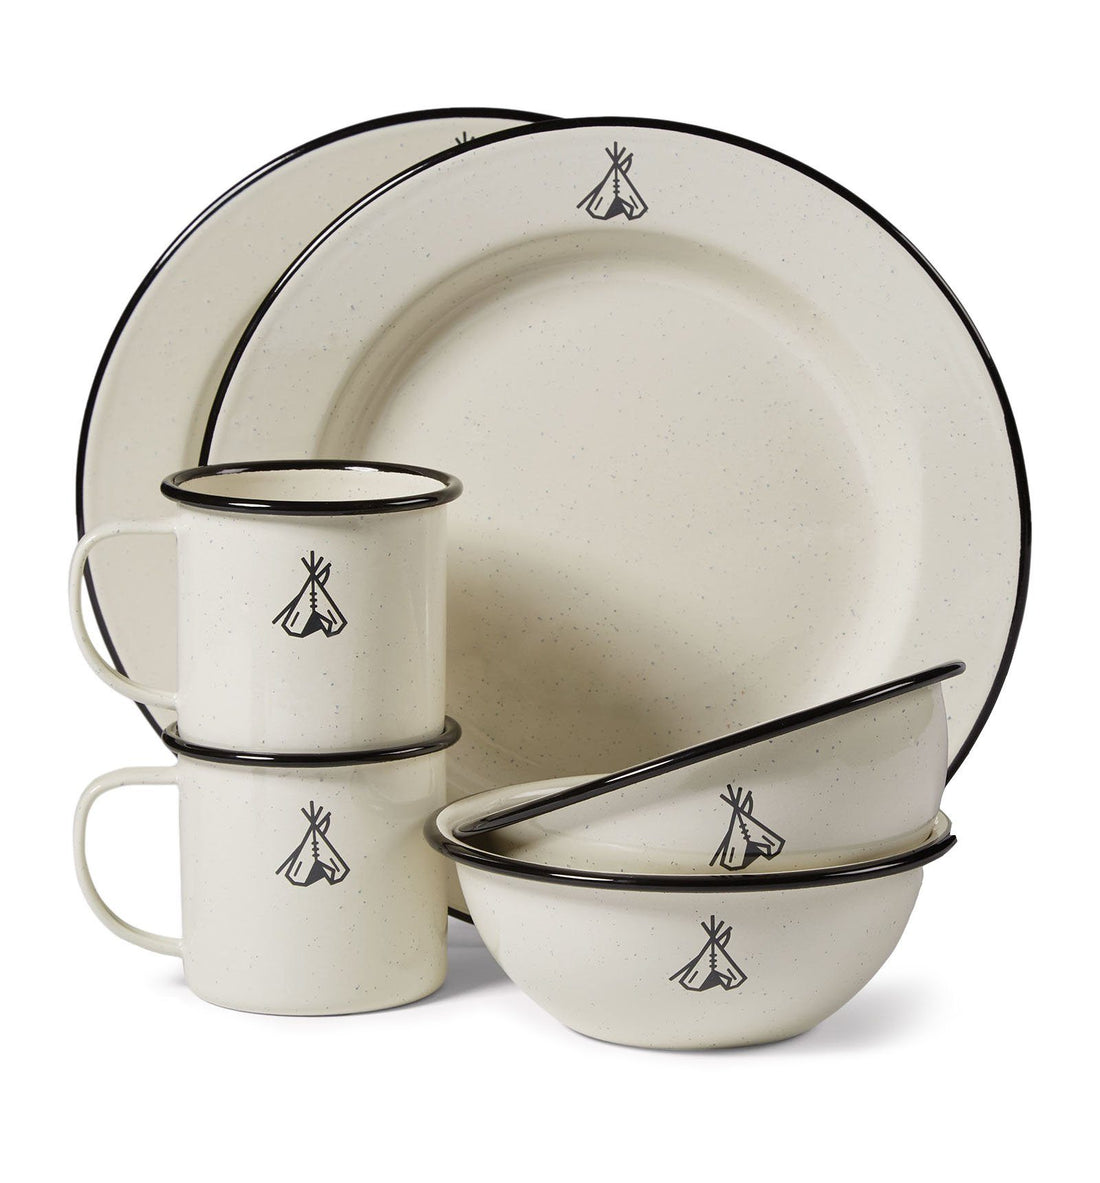 Pendleton Camp Enamelware Set - White - Outdoor Living/Travel - Iron and Resin